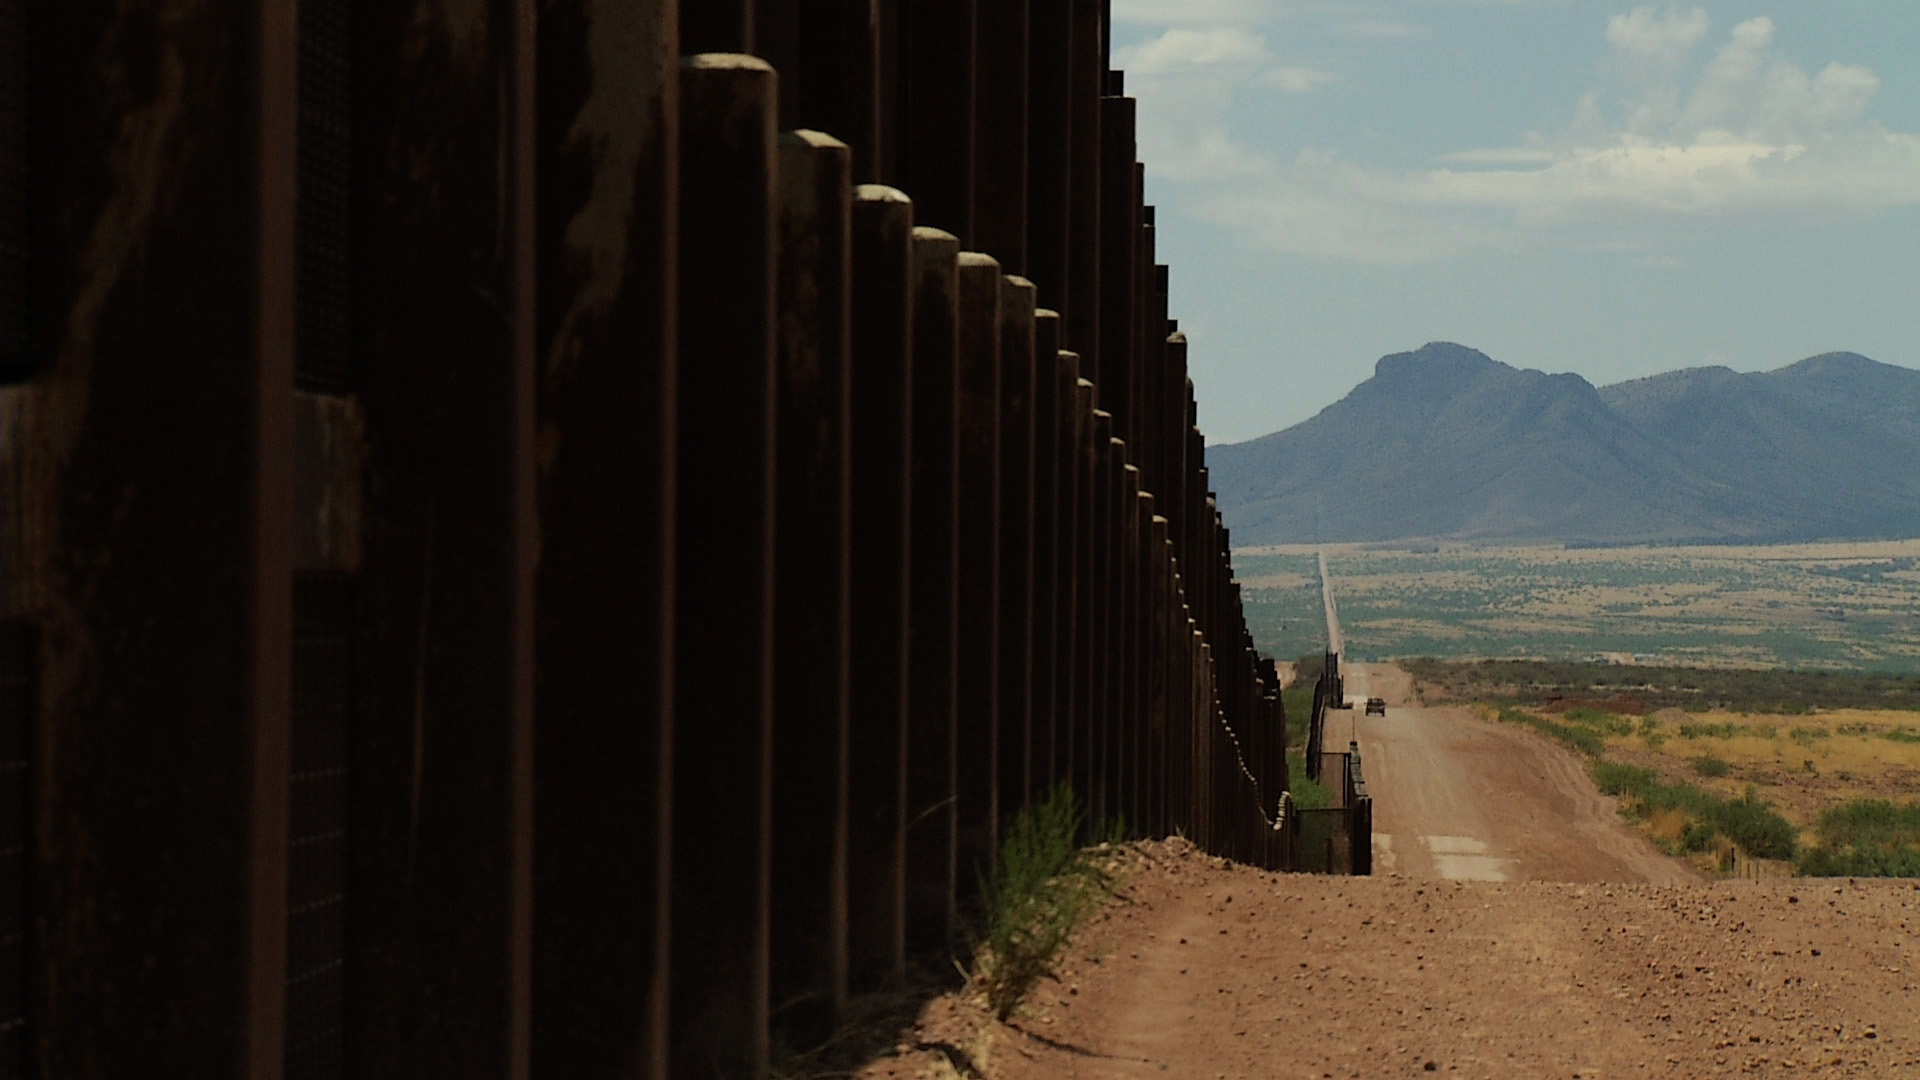 The U.S.-Mexican border in Arizona.